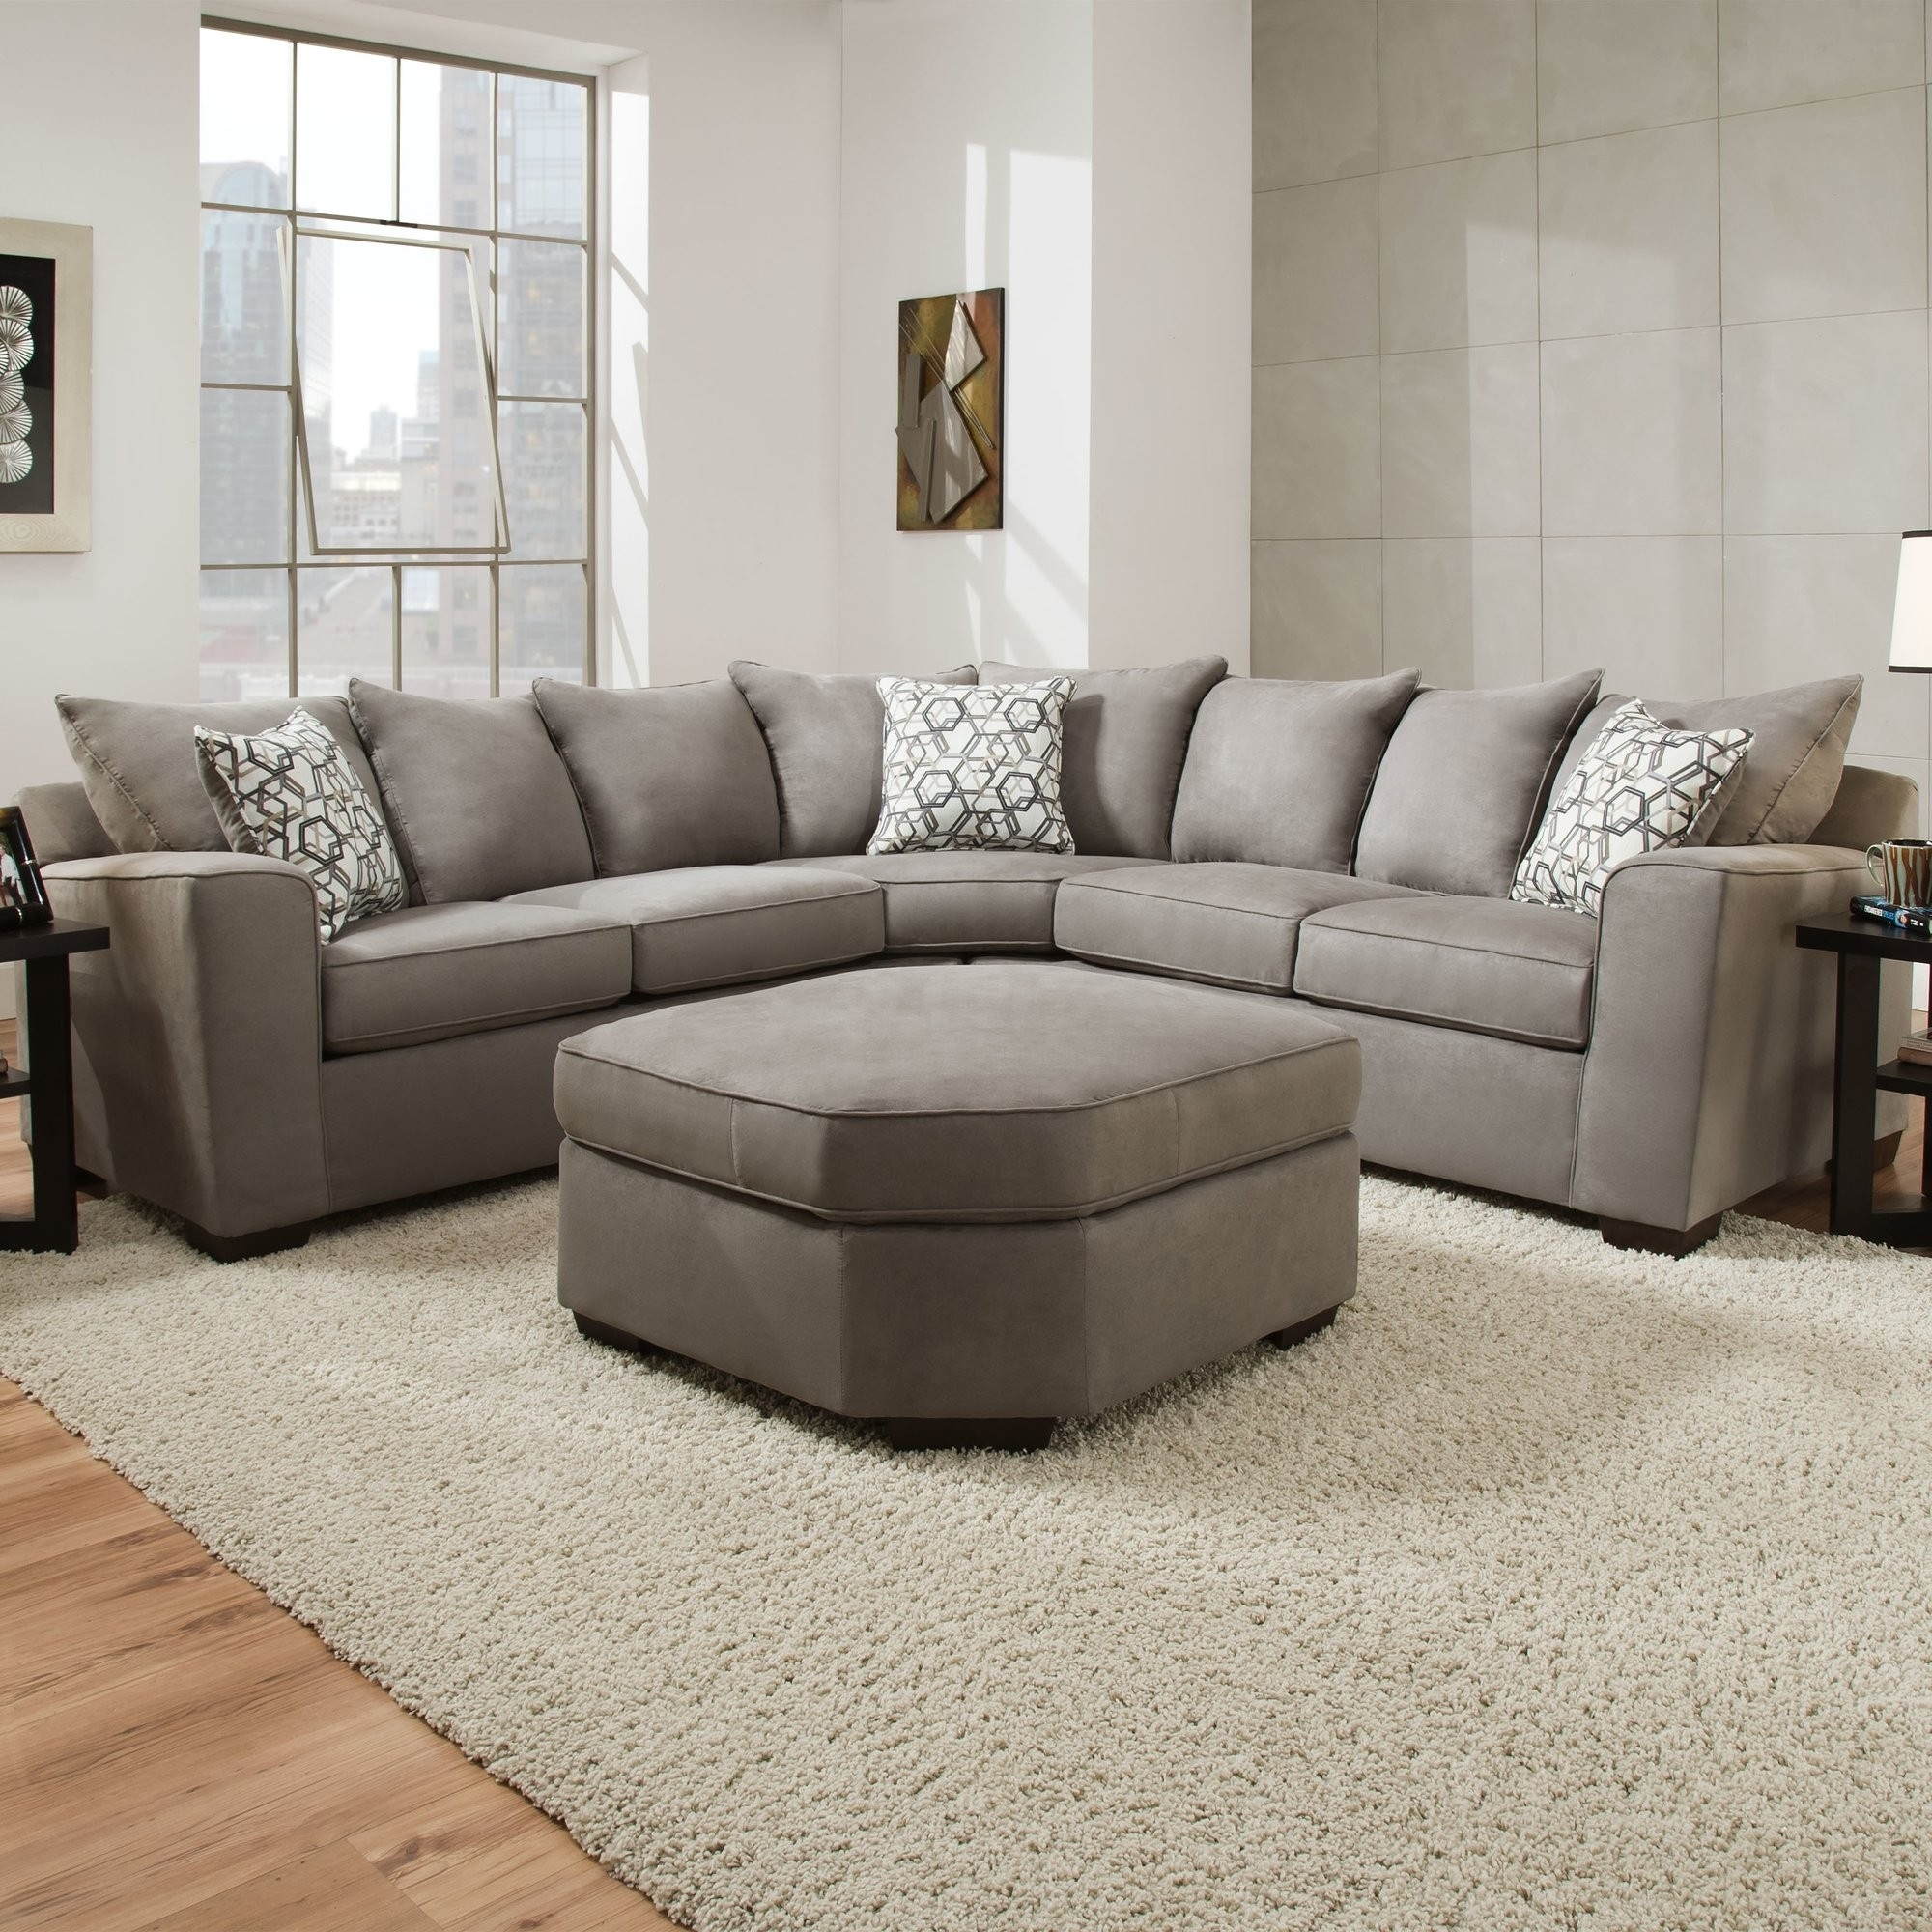 Fresh Simmons Sectional Sofa Joss And Main – Buildsimplehome Regarding Joss And Main Sectional Sofas (View 2 of 10)